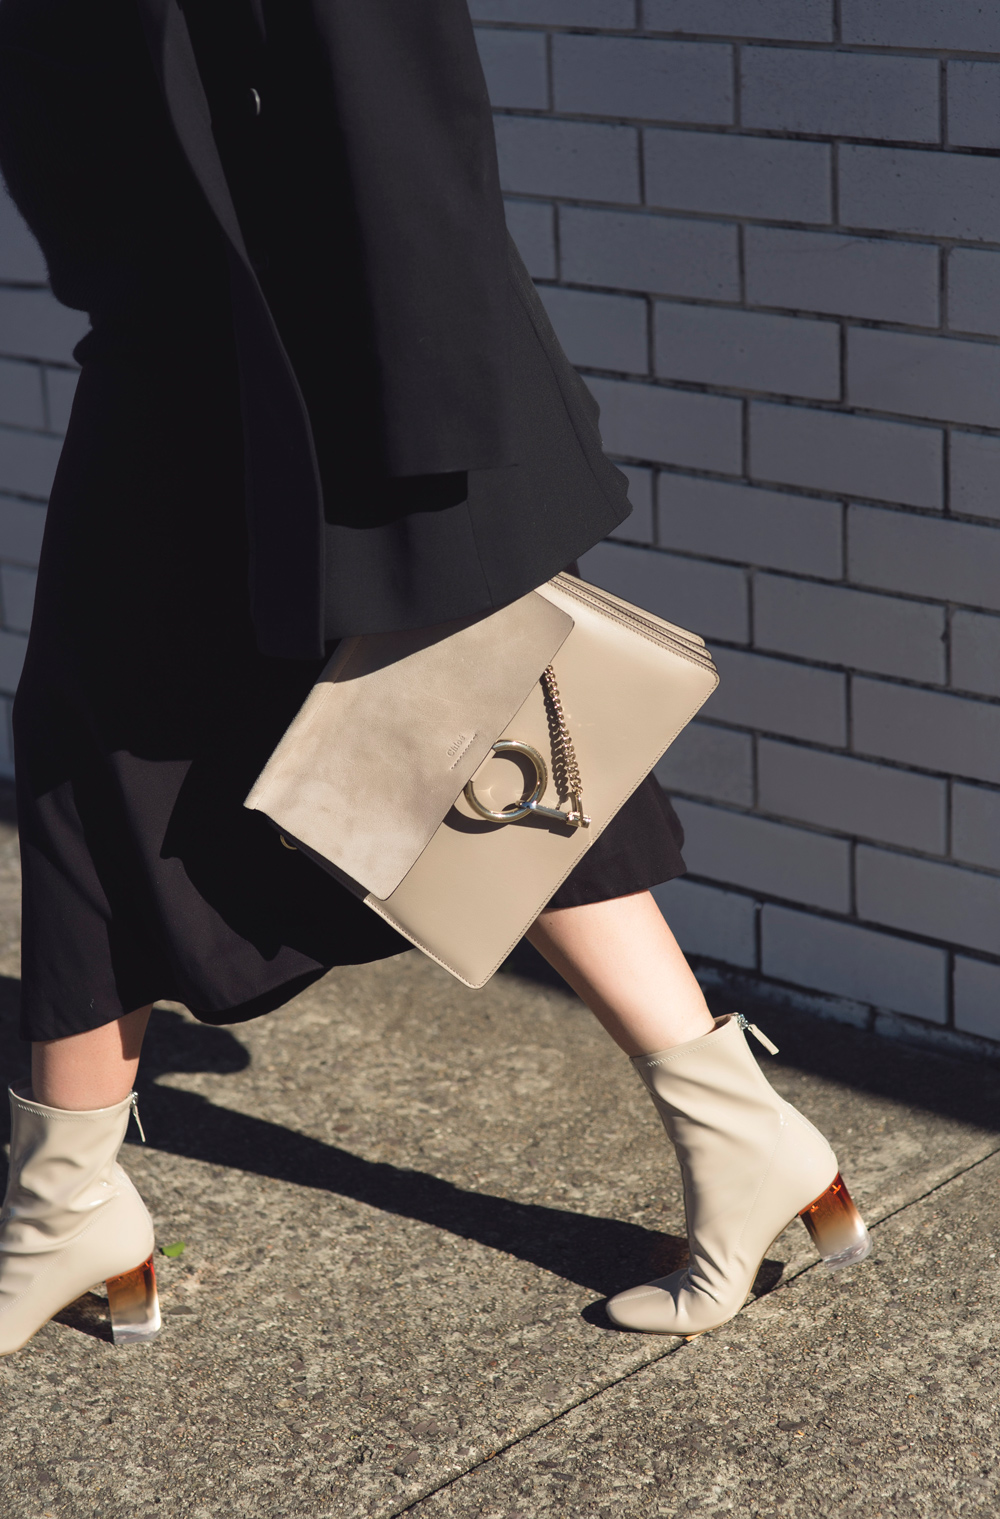 dior boots, lucite boots, black outfit, skirt, chloe bag, celine sunglasses, outfit, amanda shadforth, oracle fox